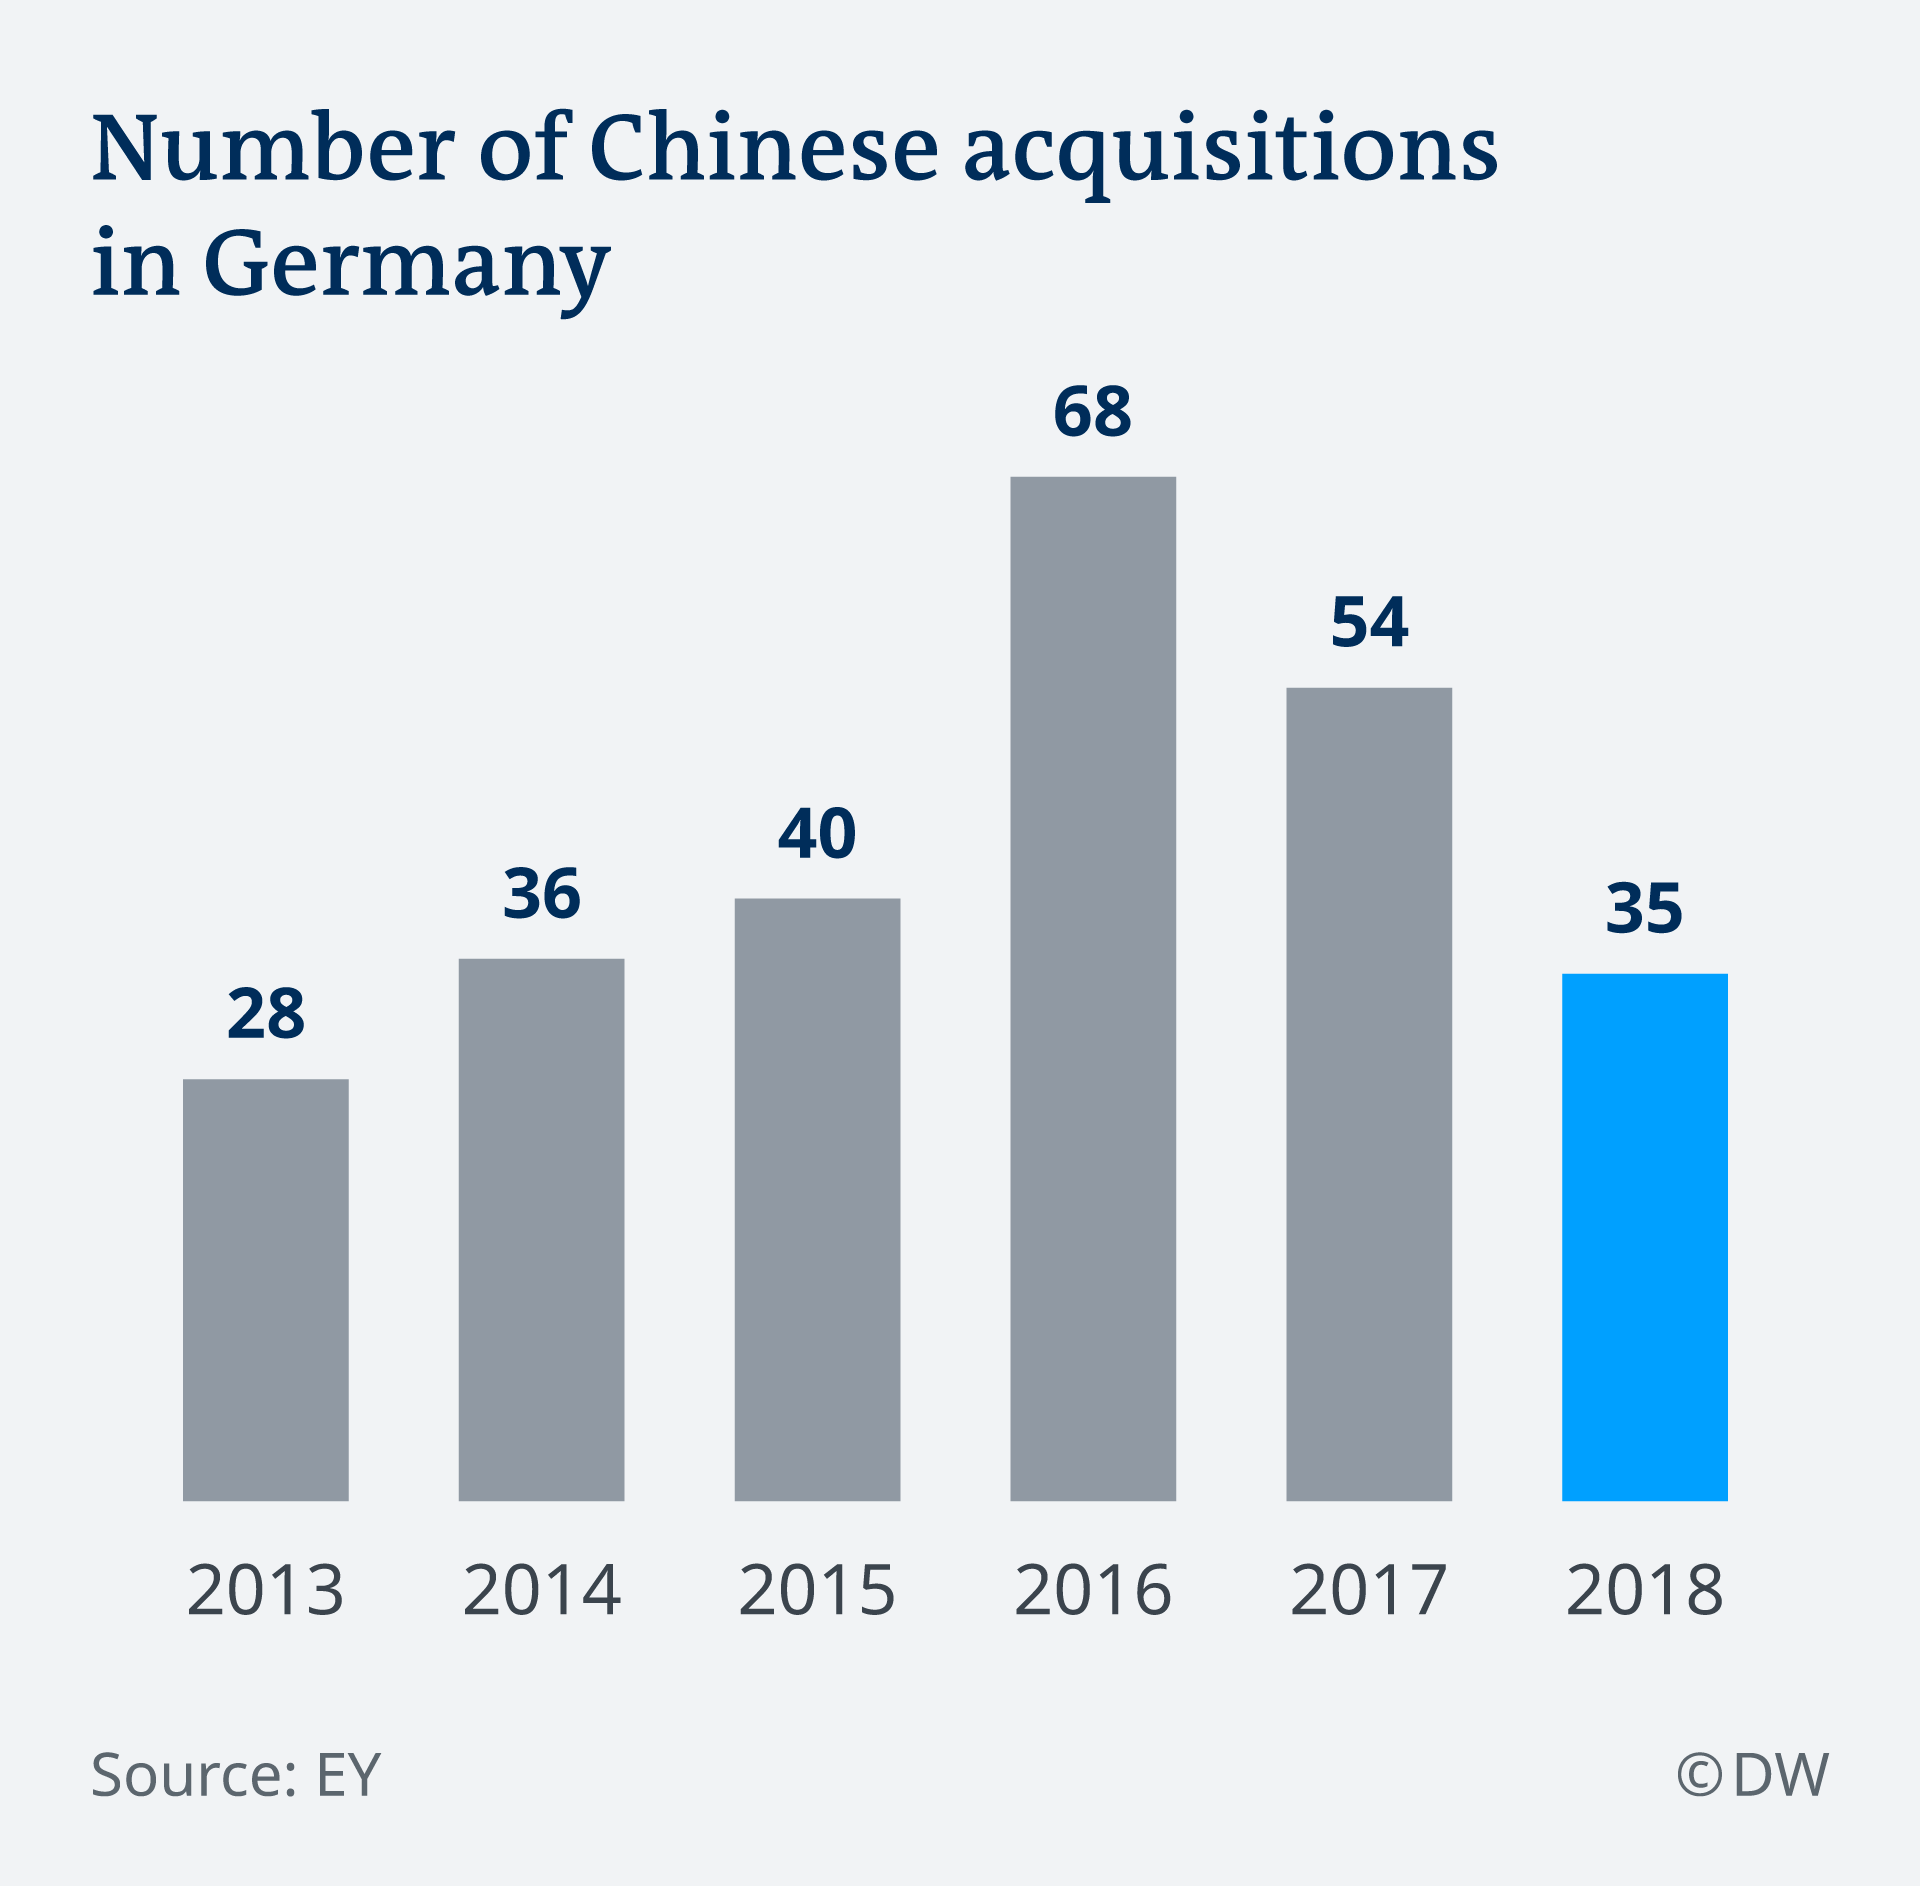 Number of Chinese acquisitions in Germany